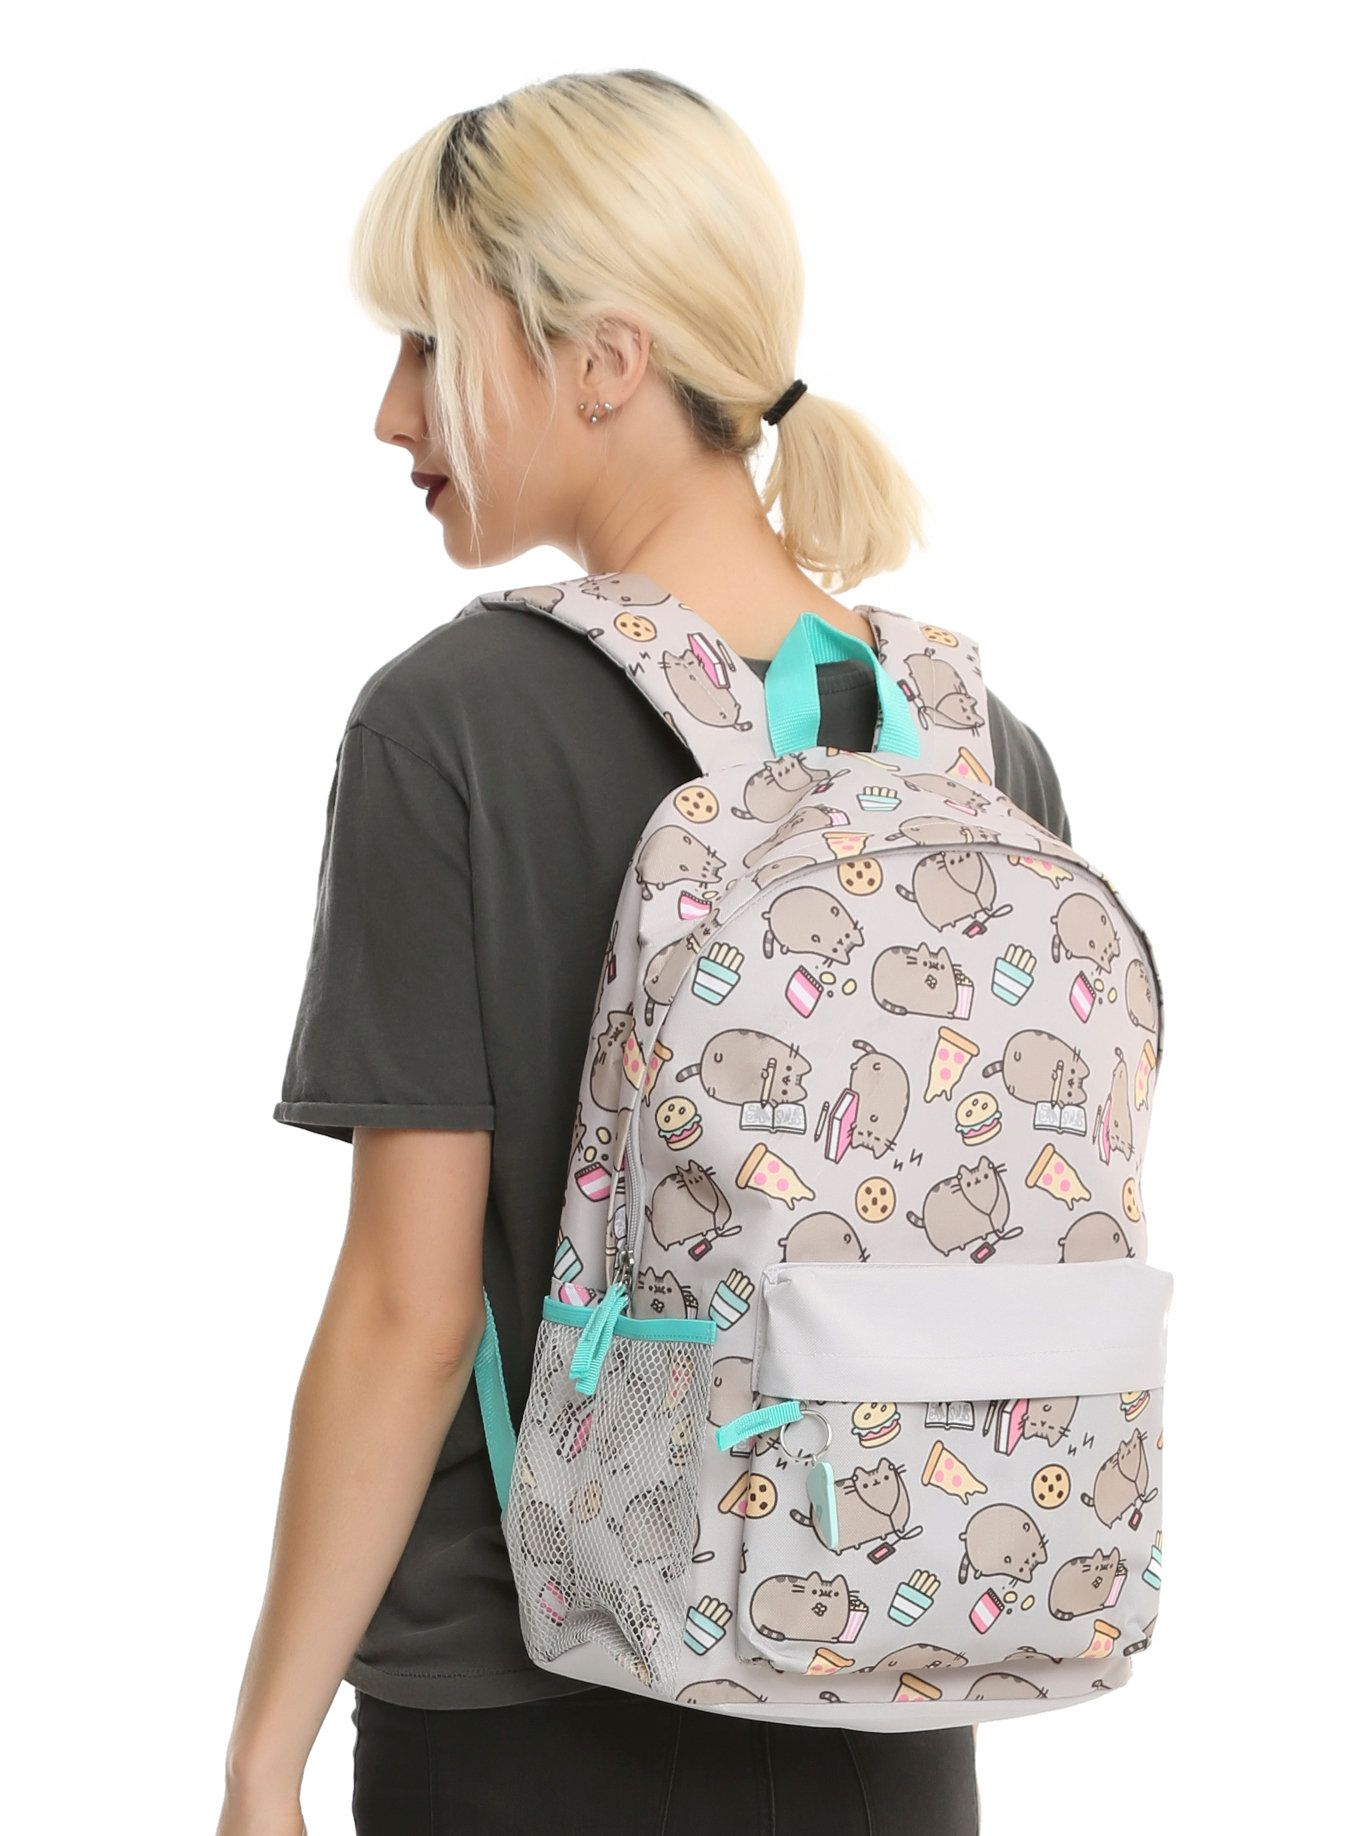 d005d82d3c5 PUSHEEN CHILLIN & SNACKIN PRINT BACKPACK | Chillin' and snackin' - it's  what Pusheen does! You can too. Just load up this backpack with your  favorite treats ...